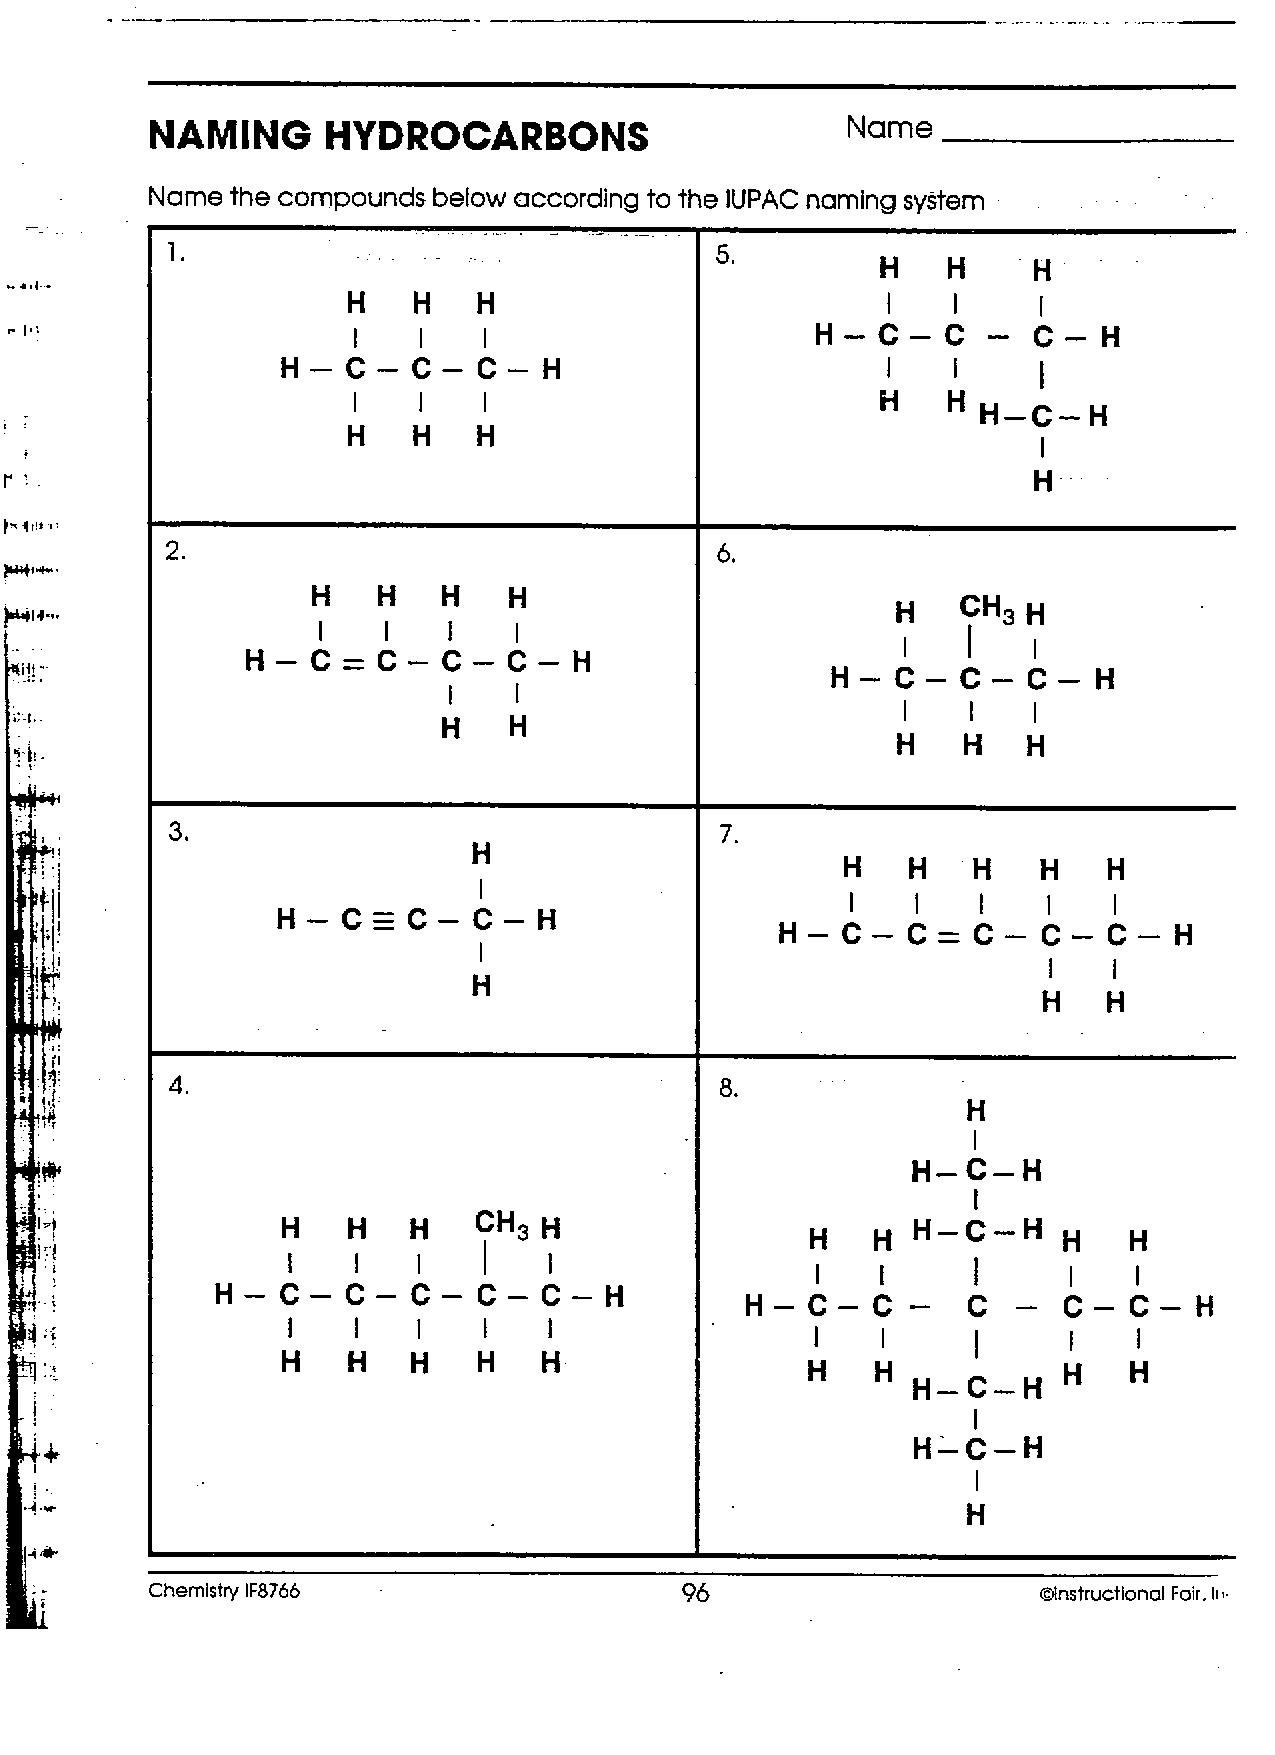 Naming Hydrocarbons Worksheet The Best Worksheets Image Collection